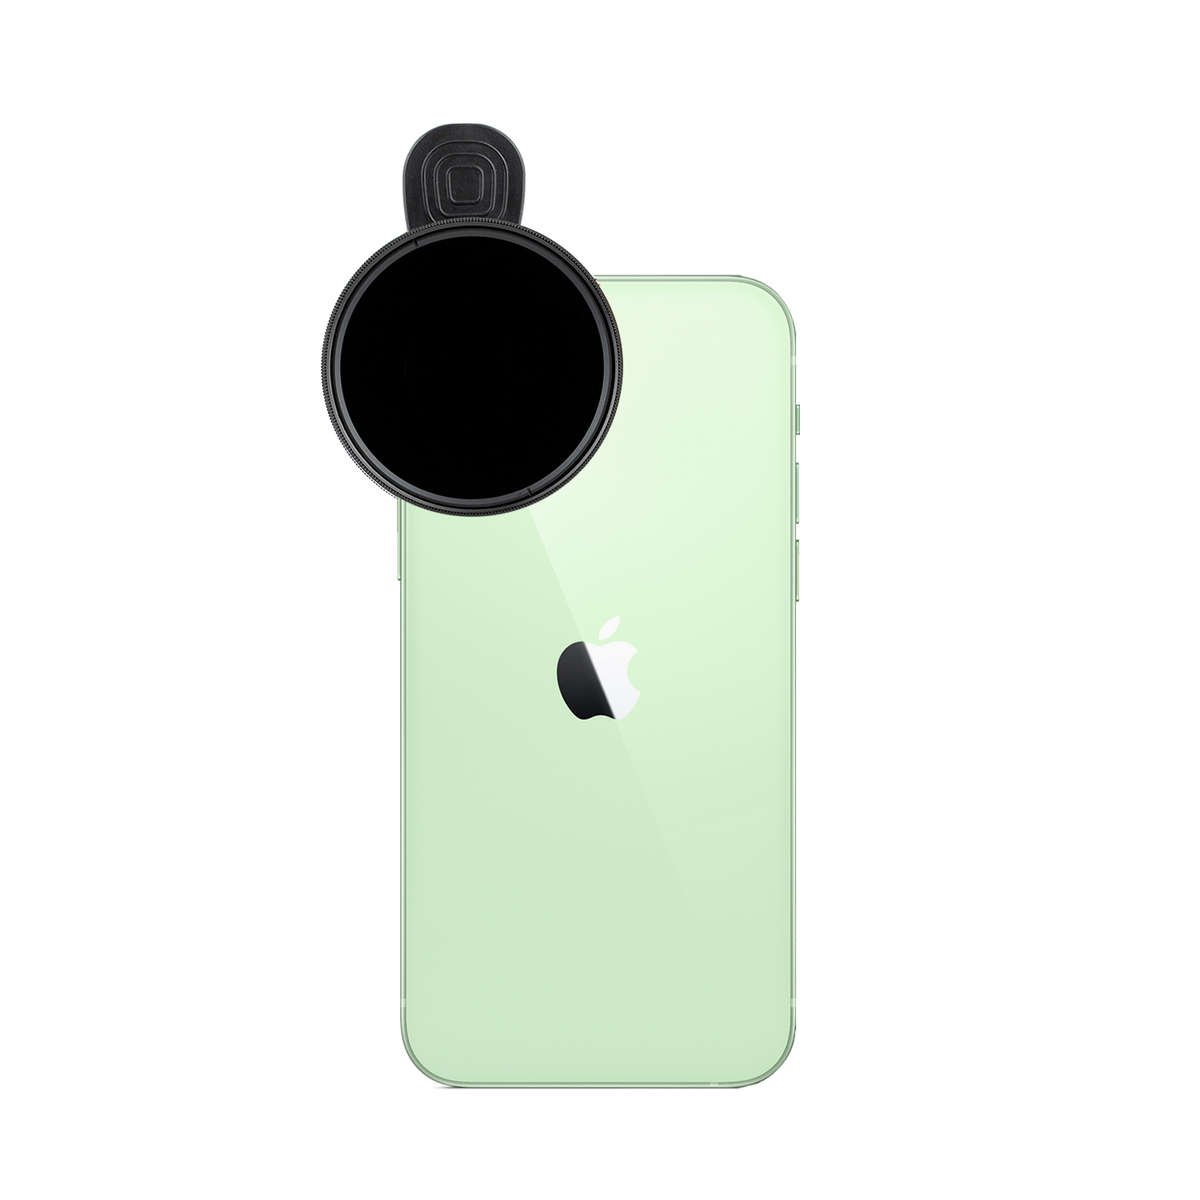 iPhone 12f ilter attachment